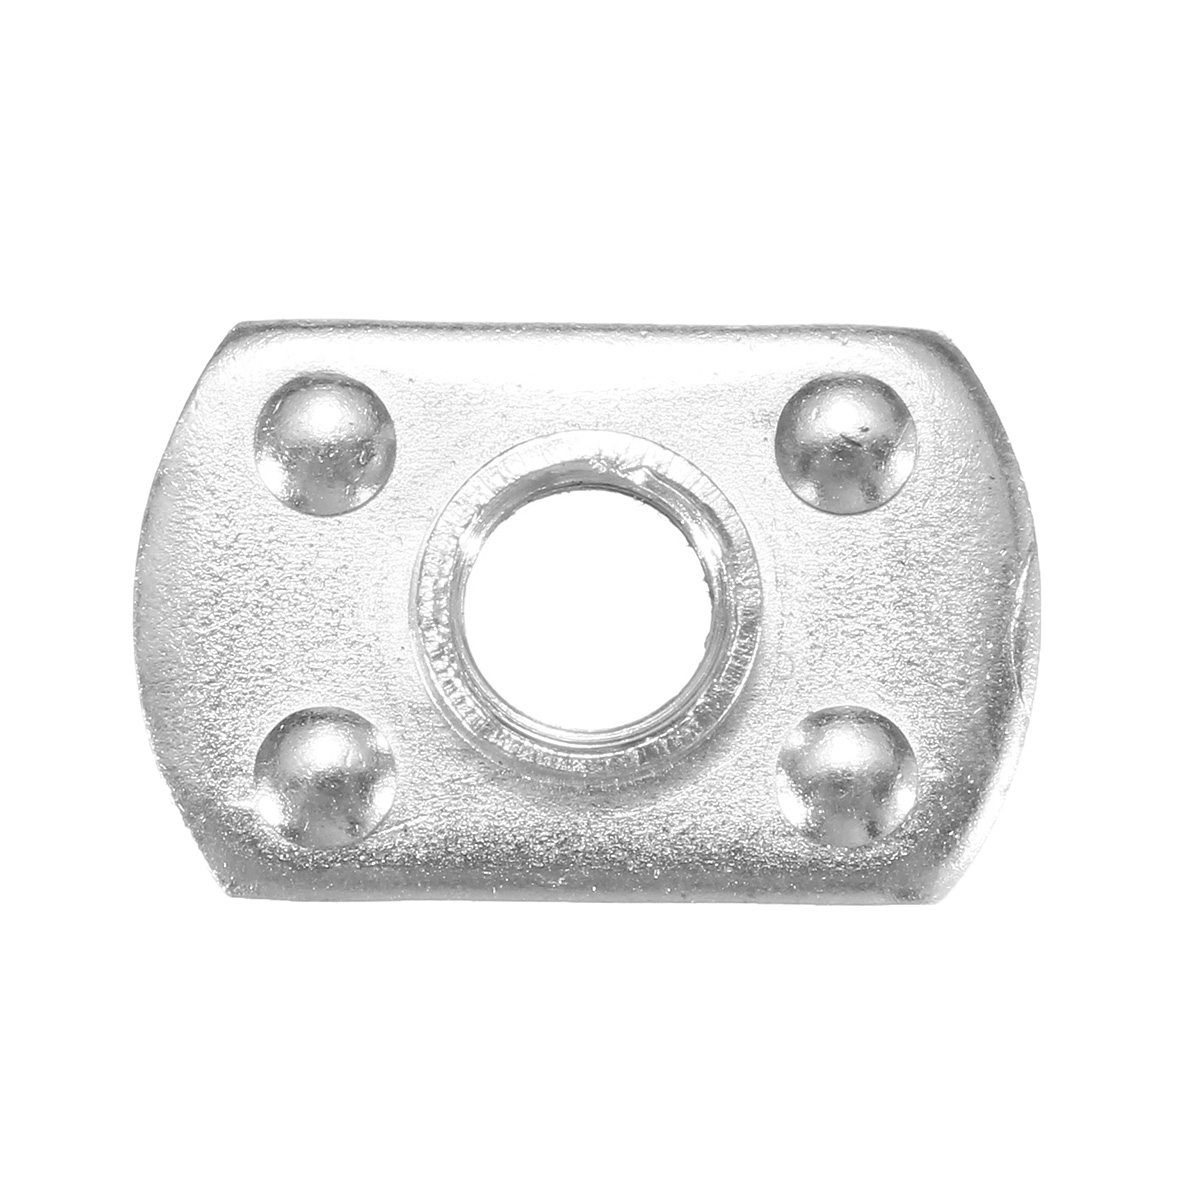 medium resolution of 24x hard top fastener thumb screw nut plate washer fit for jeep wrangler yj jk in nuts bolts from automobiles motorcycles on aliexpress com alibaba